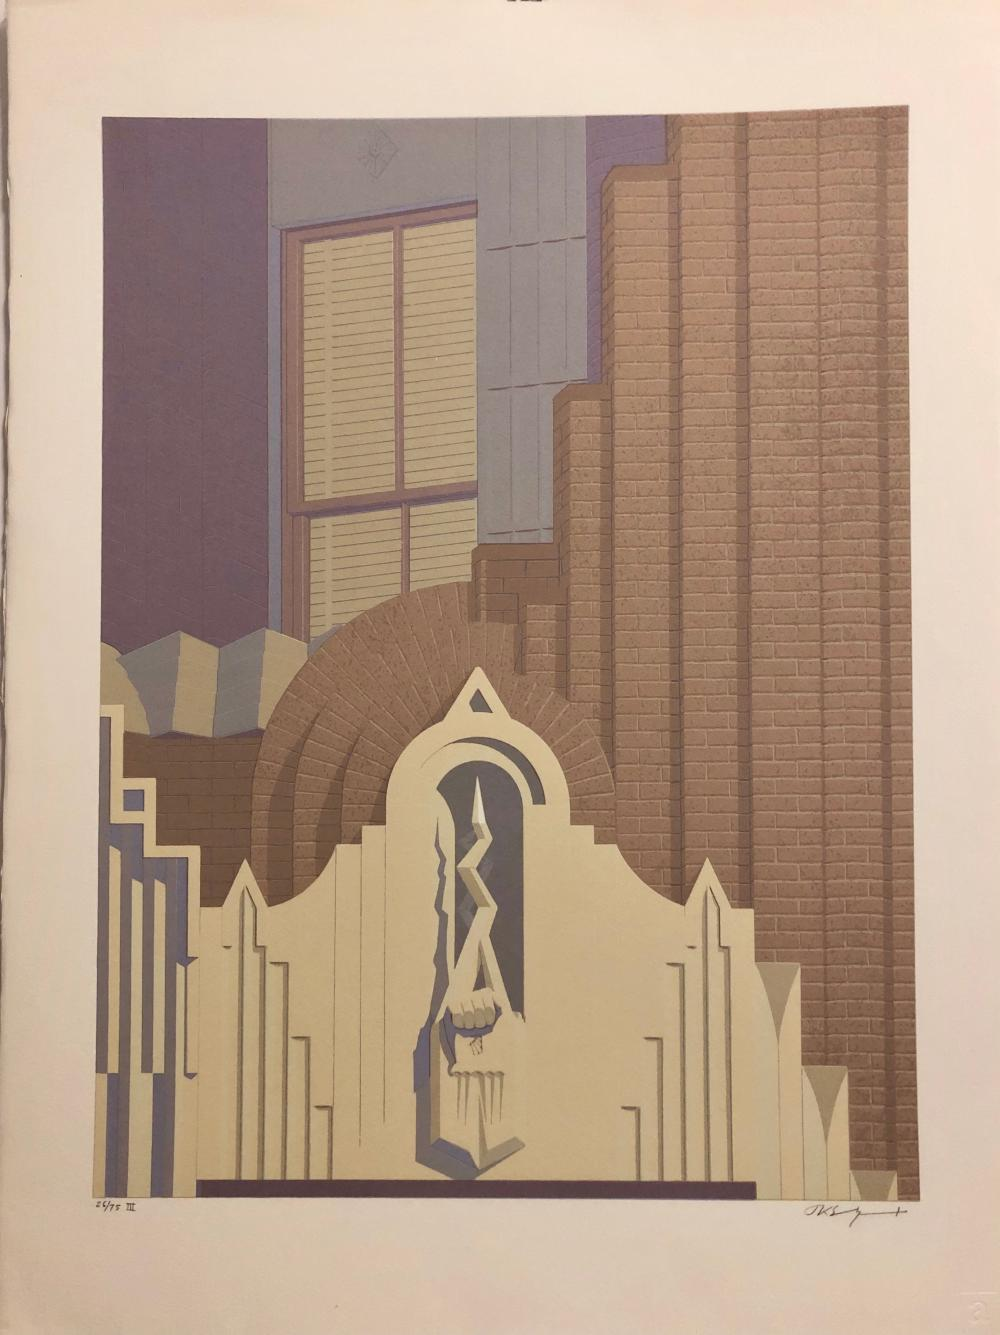 RARE RCA Building, JK Sundquist Color Litho